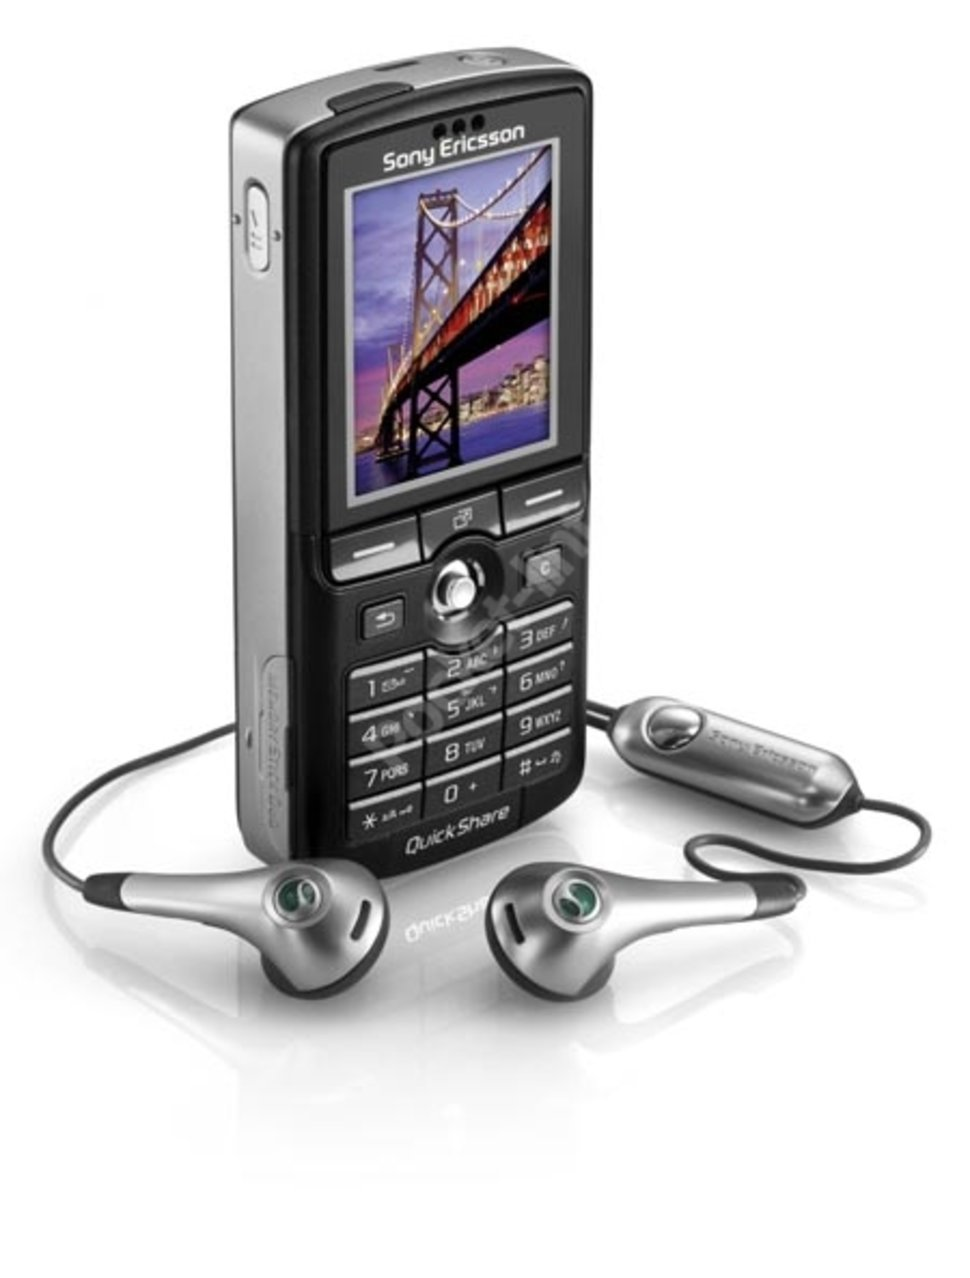 nokia k750i manual user guide manual that easy to read u2022 rh sibere co K800i Themes K800i Games